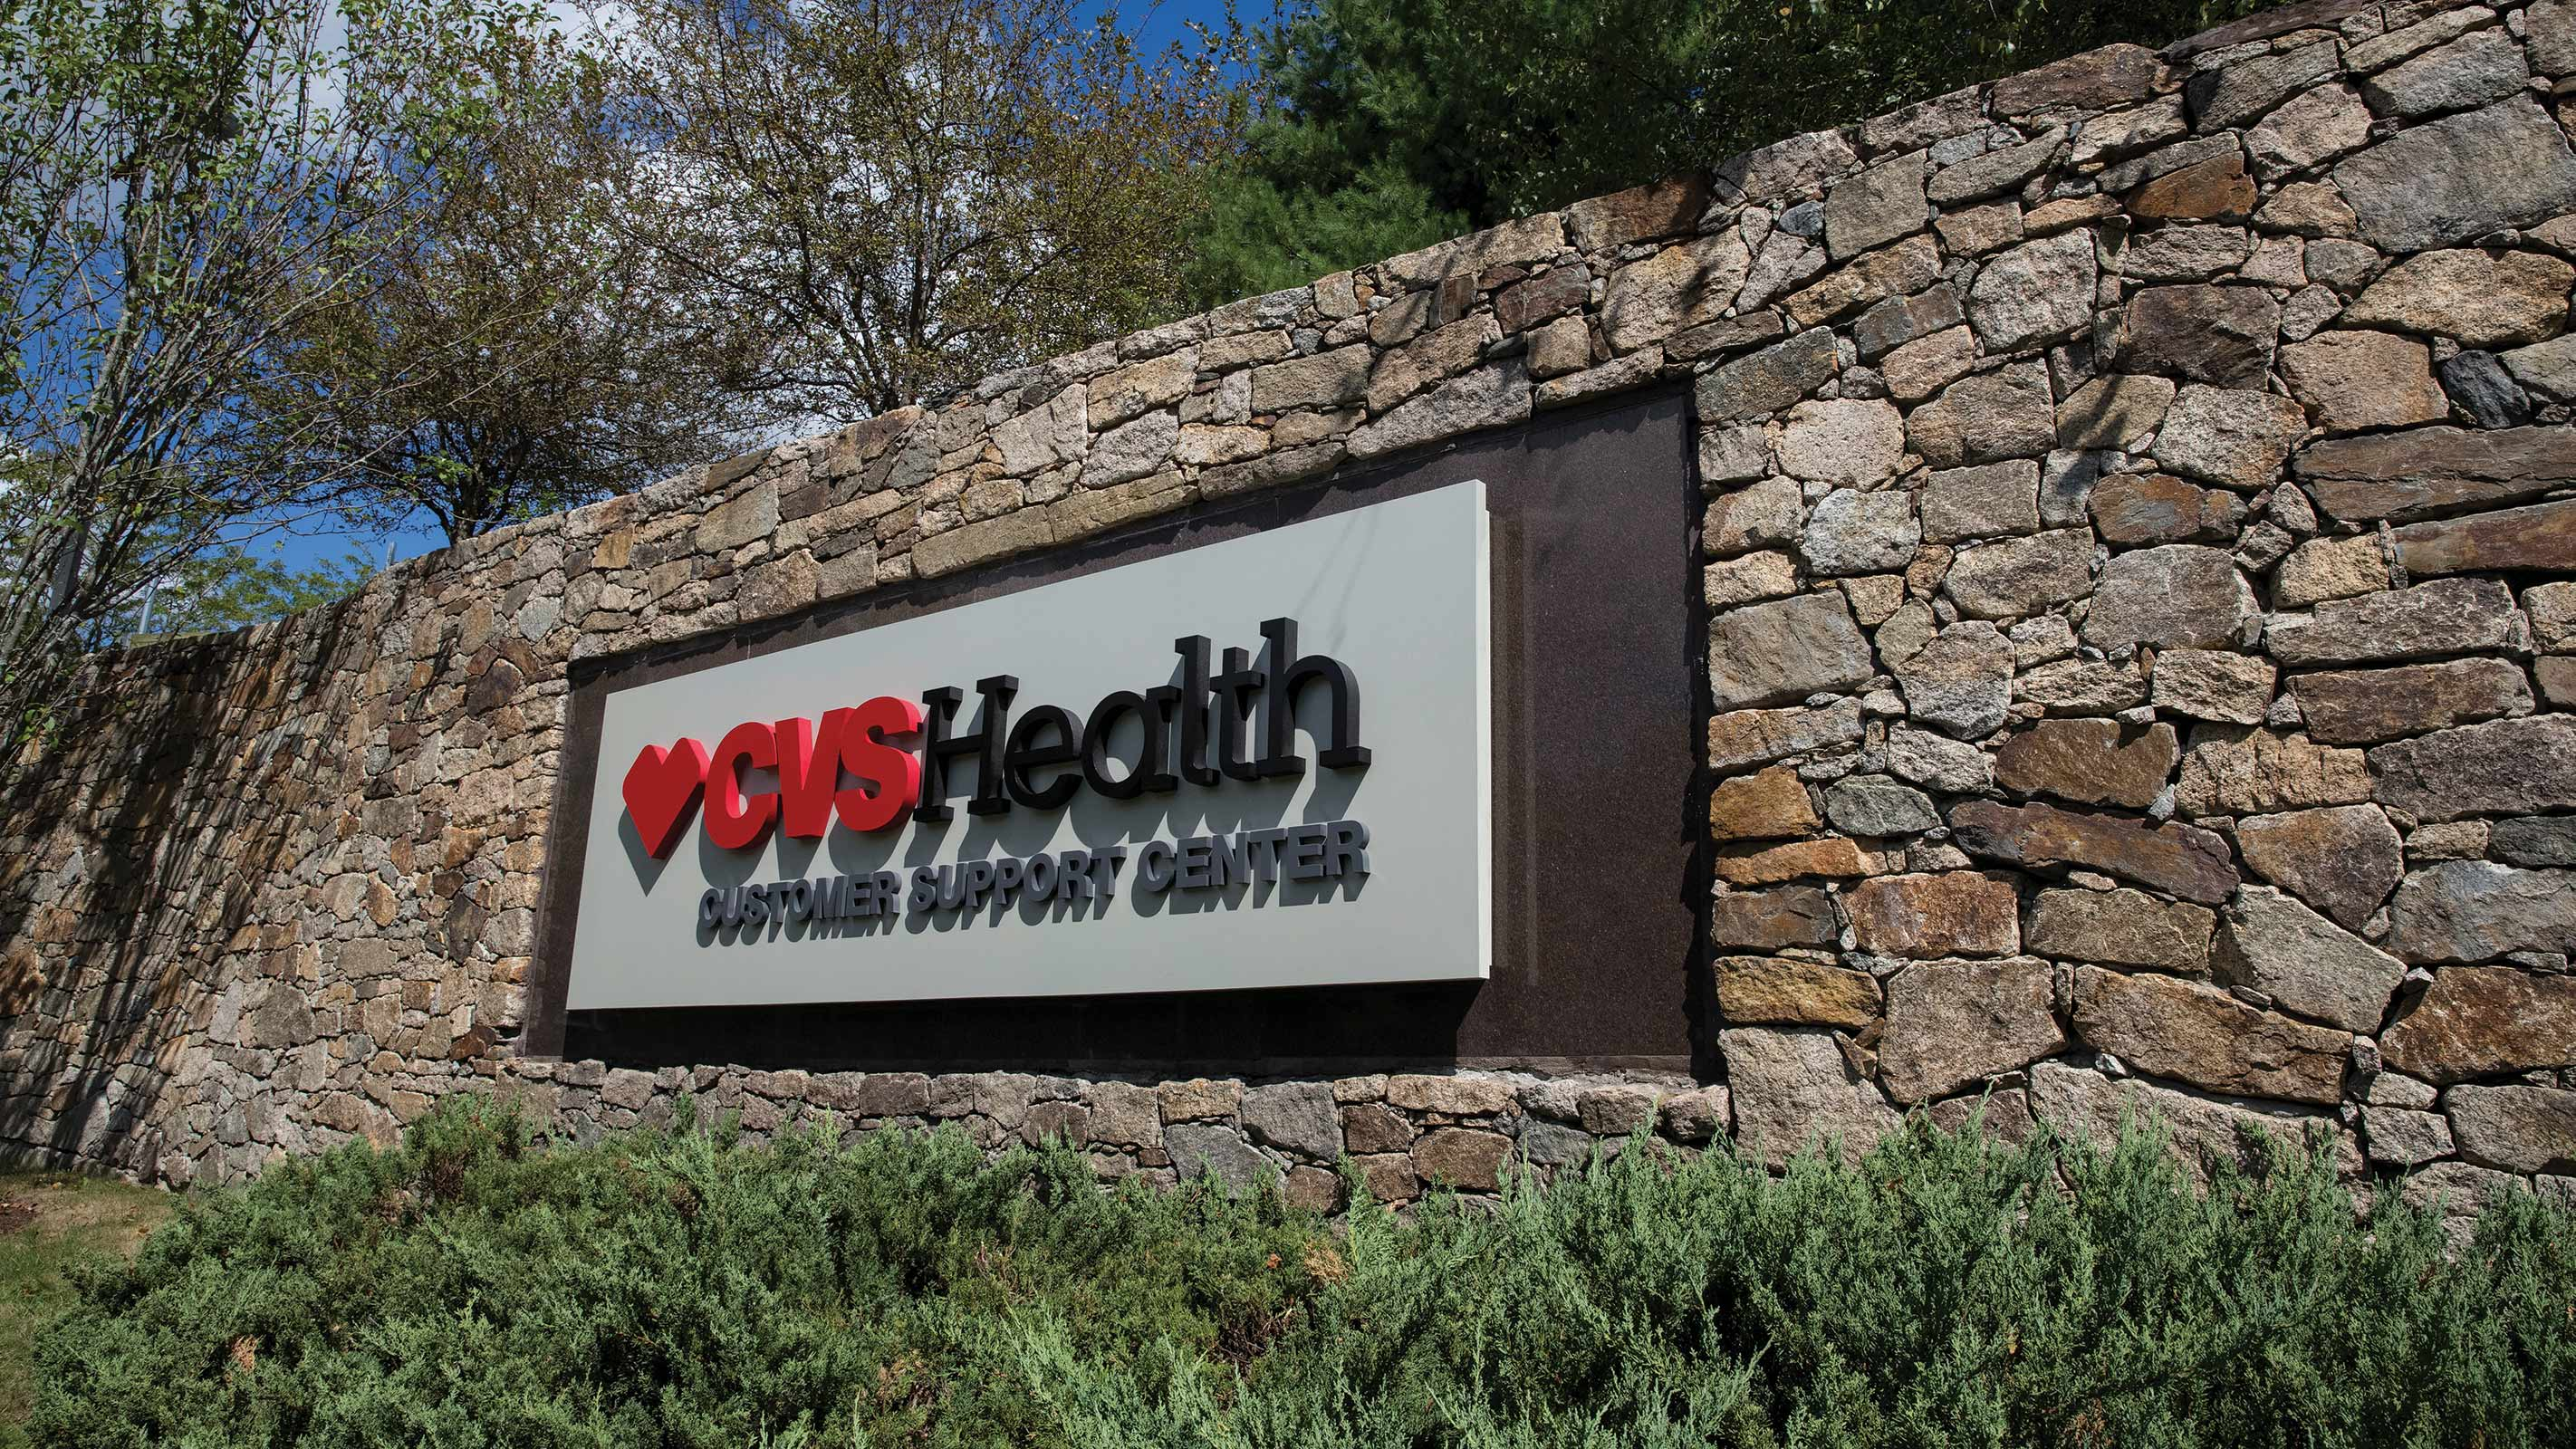 A photo of the exterior sign on the stone wall, outside of the CVS Health Customer Service Center in Woonsocket, Rhode Island.